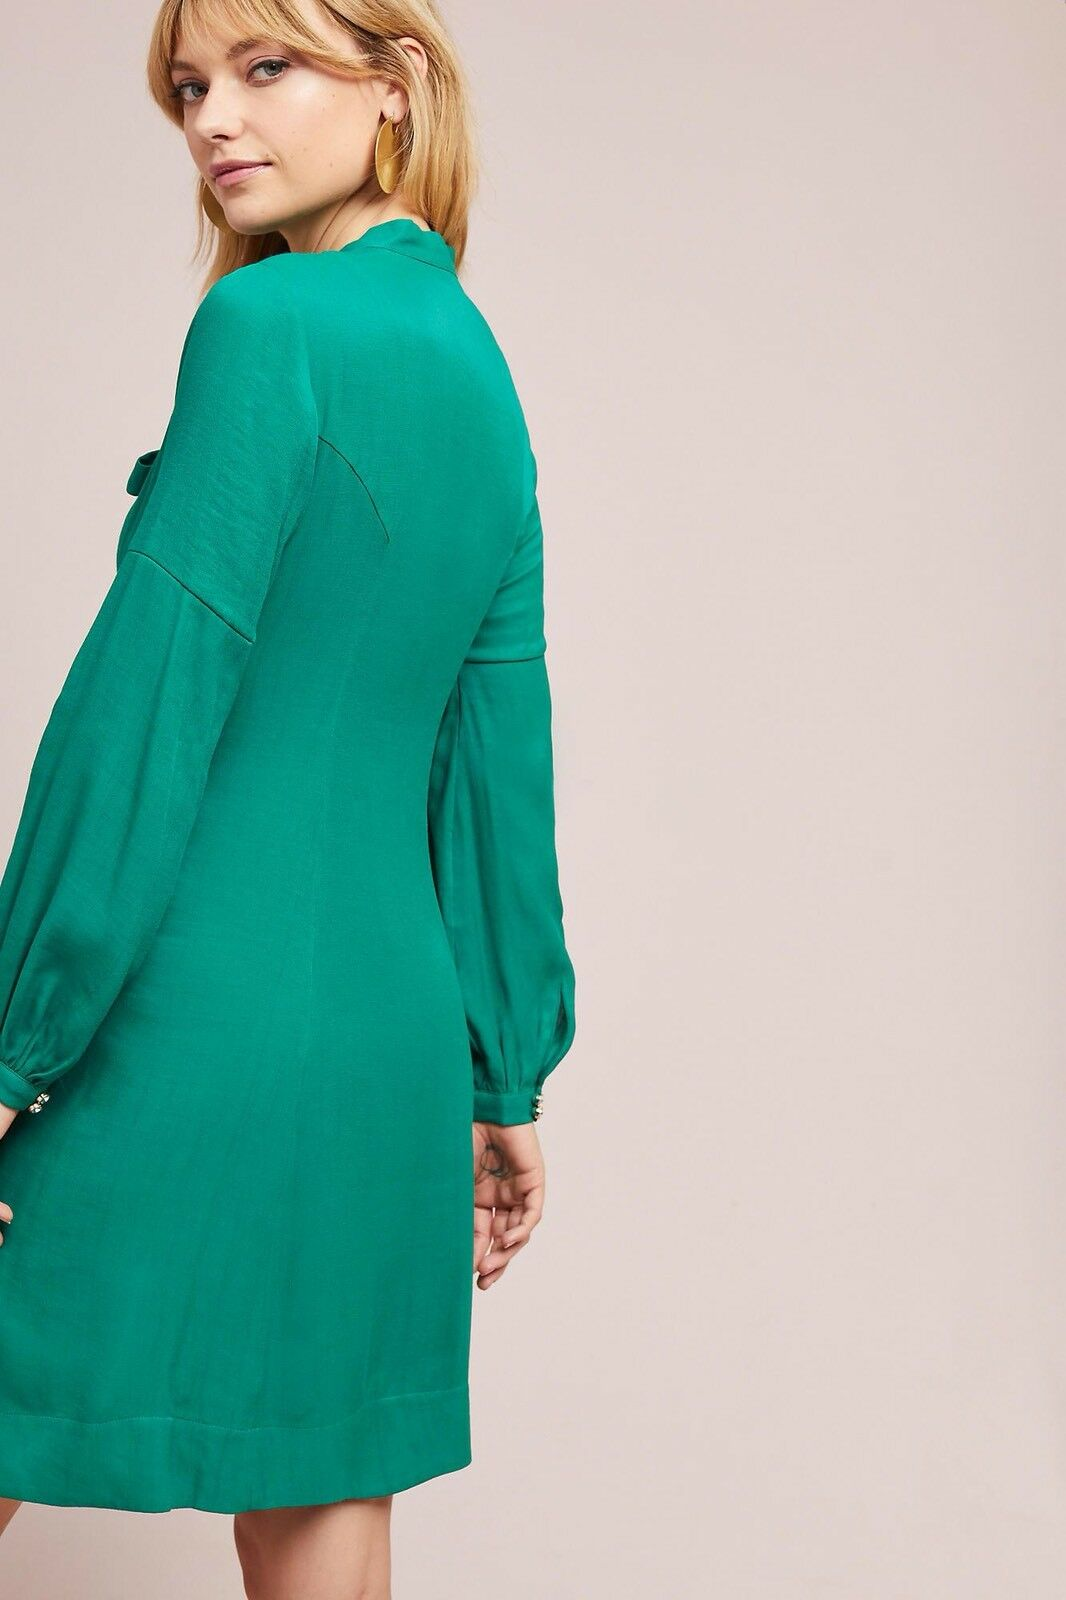 906f14e3111 ... NWT New New New Anthropologie Gina Keyhole Dress by Moulinette Soeurs  Green Size 2 f7404a ...